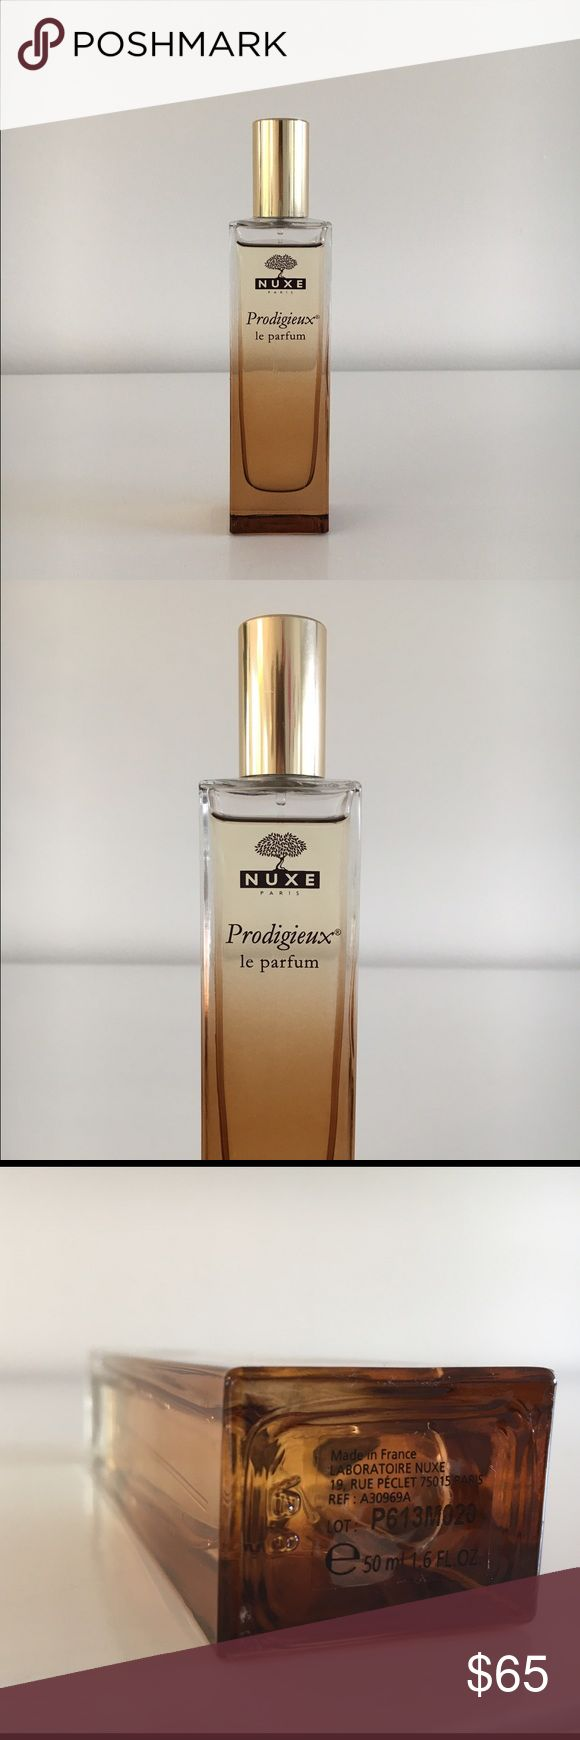 NUXE Prodigieux Le Parfum EAU DE PARFUM. For all skin types. This fragrance is based on the French brand's cult all-purpose dry oil, Huile Prodigieuse. A summery, beachy scent with notes of orange blossom, magnolia, bergamot, and vanilla. Summer in a bottle! NUXE Makeup